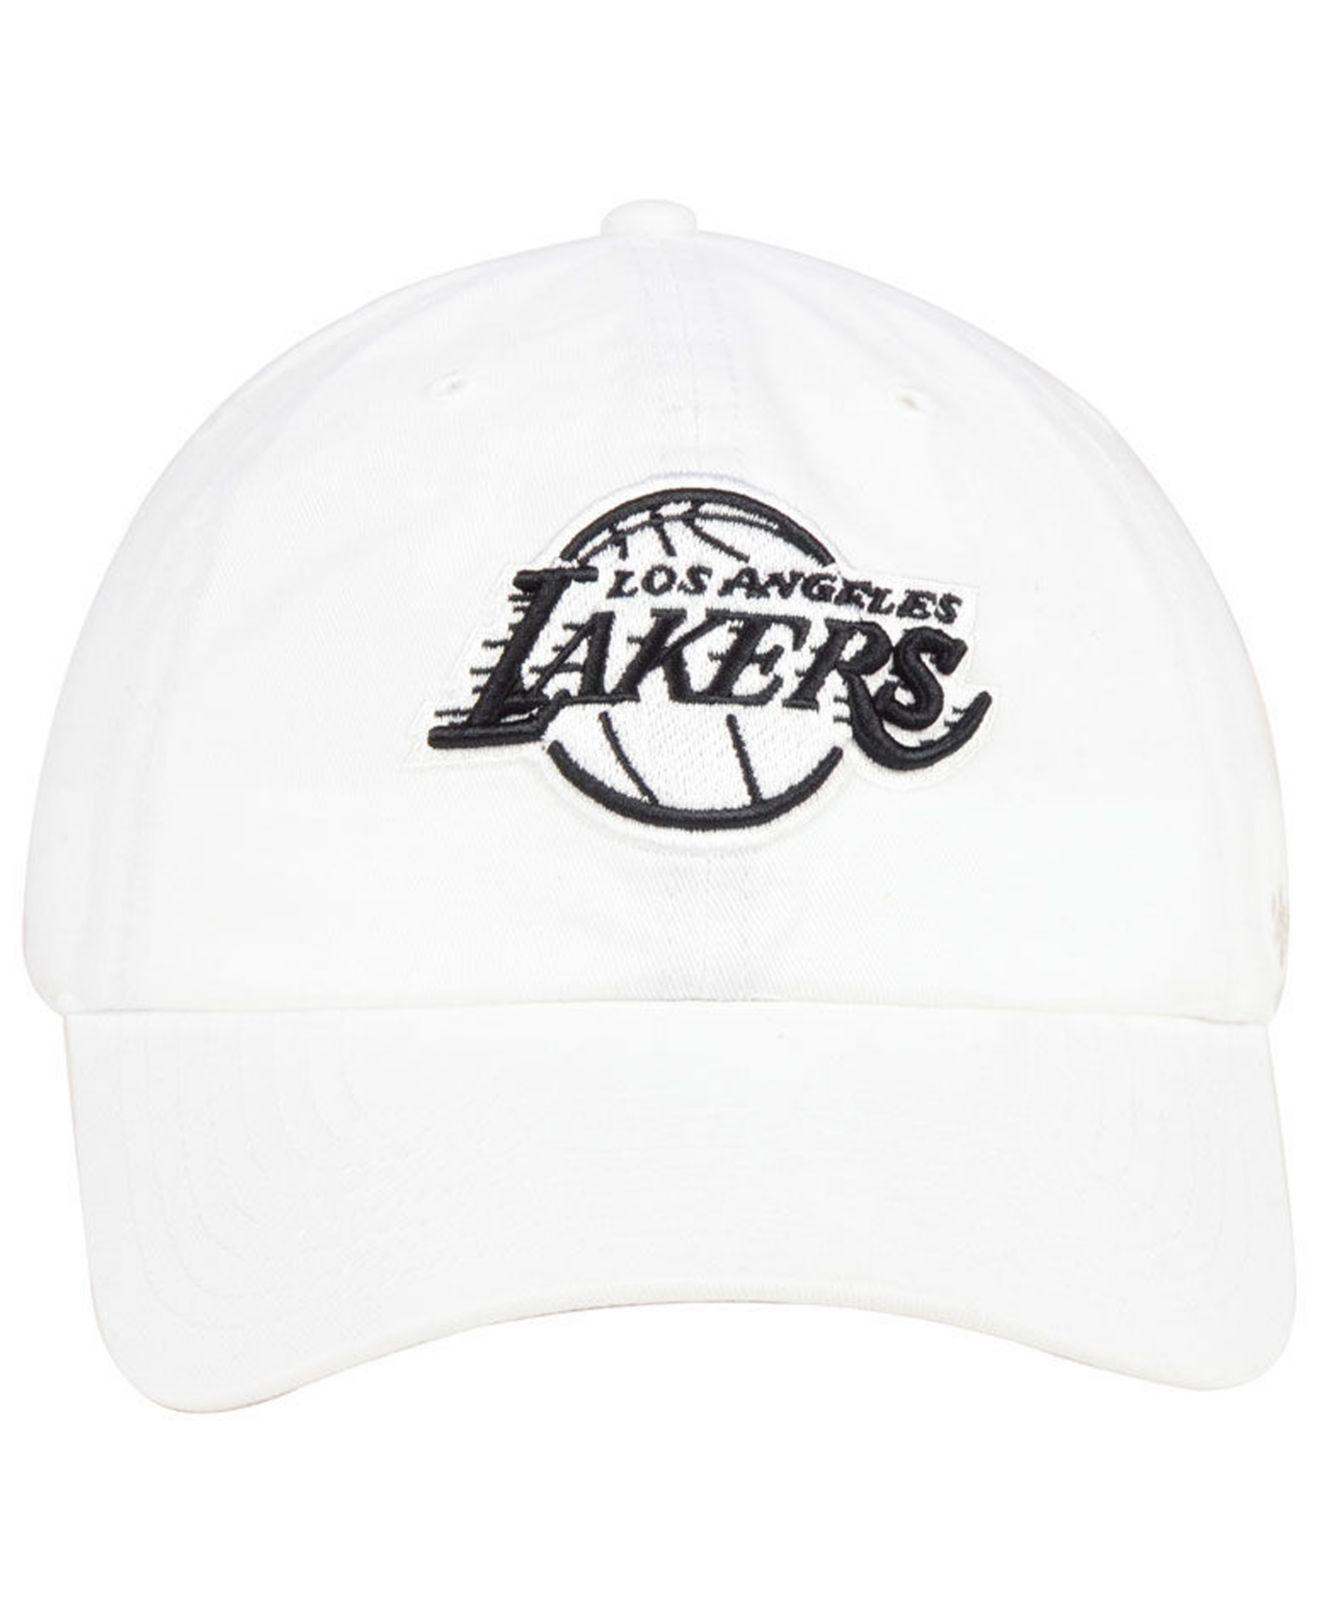 ... cheap lyst 47 brand los angeles lakers clean up cap in white for men  87be3 84217 eecc7f0d250e